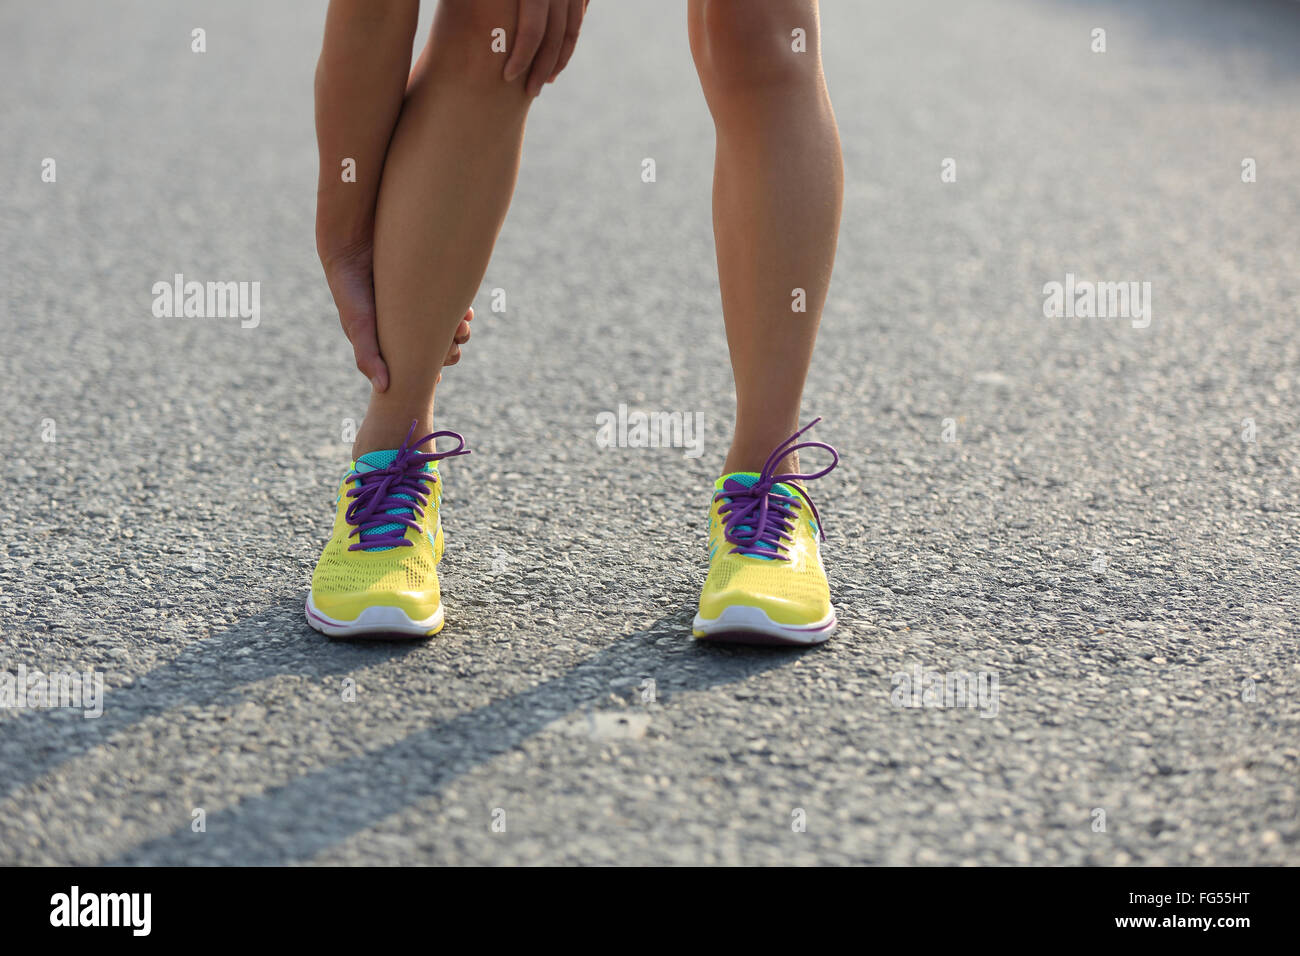 young woman runner with injured legs on city road - Stock Image